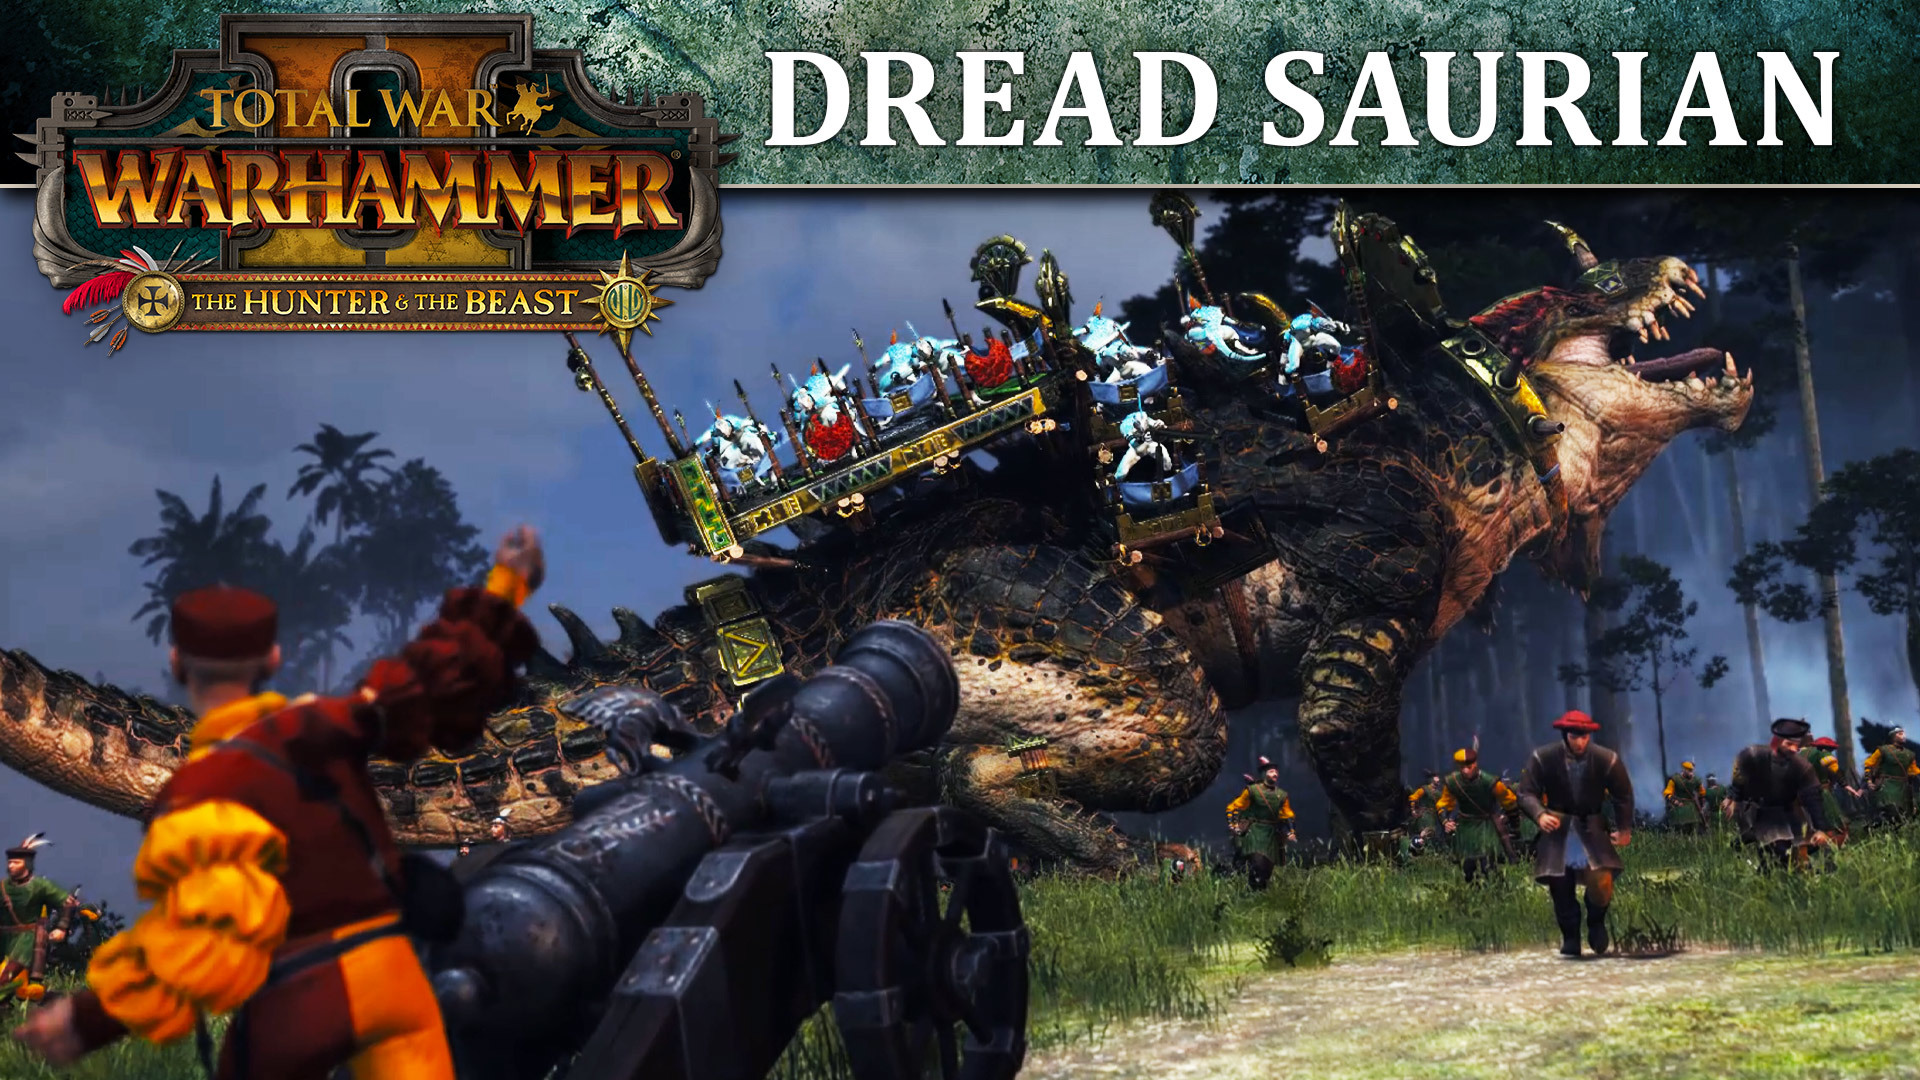 Sep 16 2019 The Hunter The Beast Beta Total War Warhammer Ii Ca James A Beta Update For The Hunter The Beast Is Now Live The Main Update Is That Based On Community Feedback We Ve Reverted The Change To Ports To What They Were Prior To There are loads of options from mowing lawns and pulling weeds to planning. steam